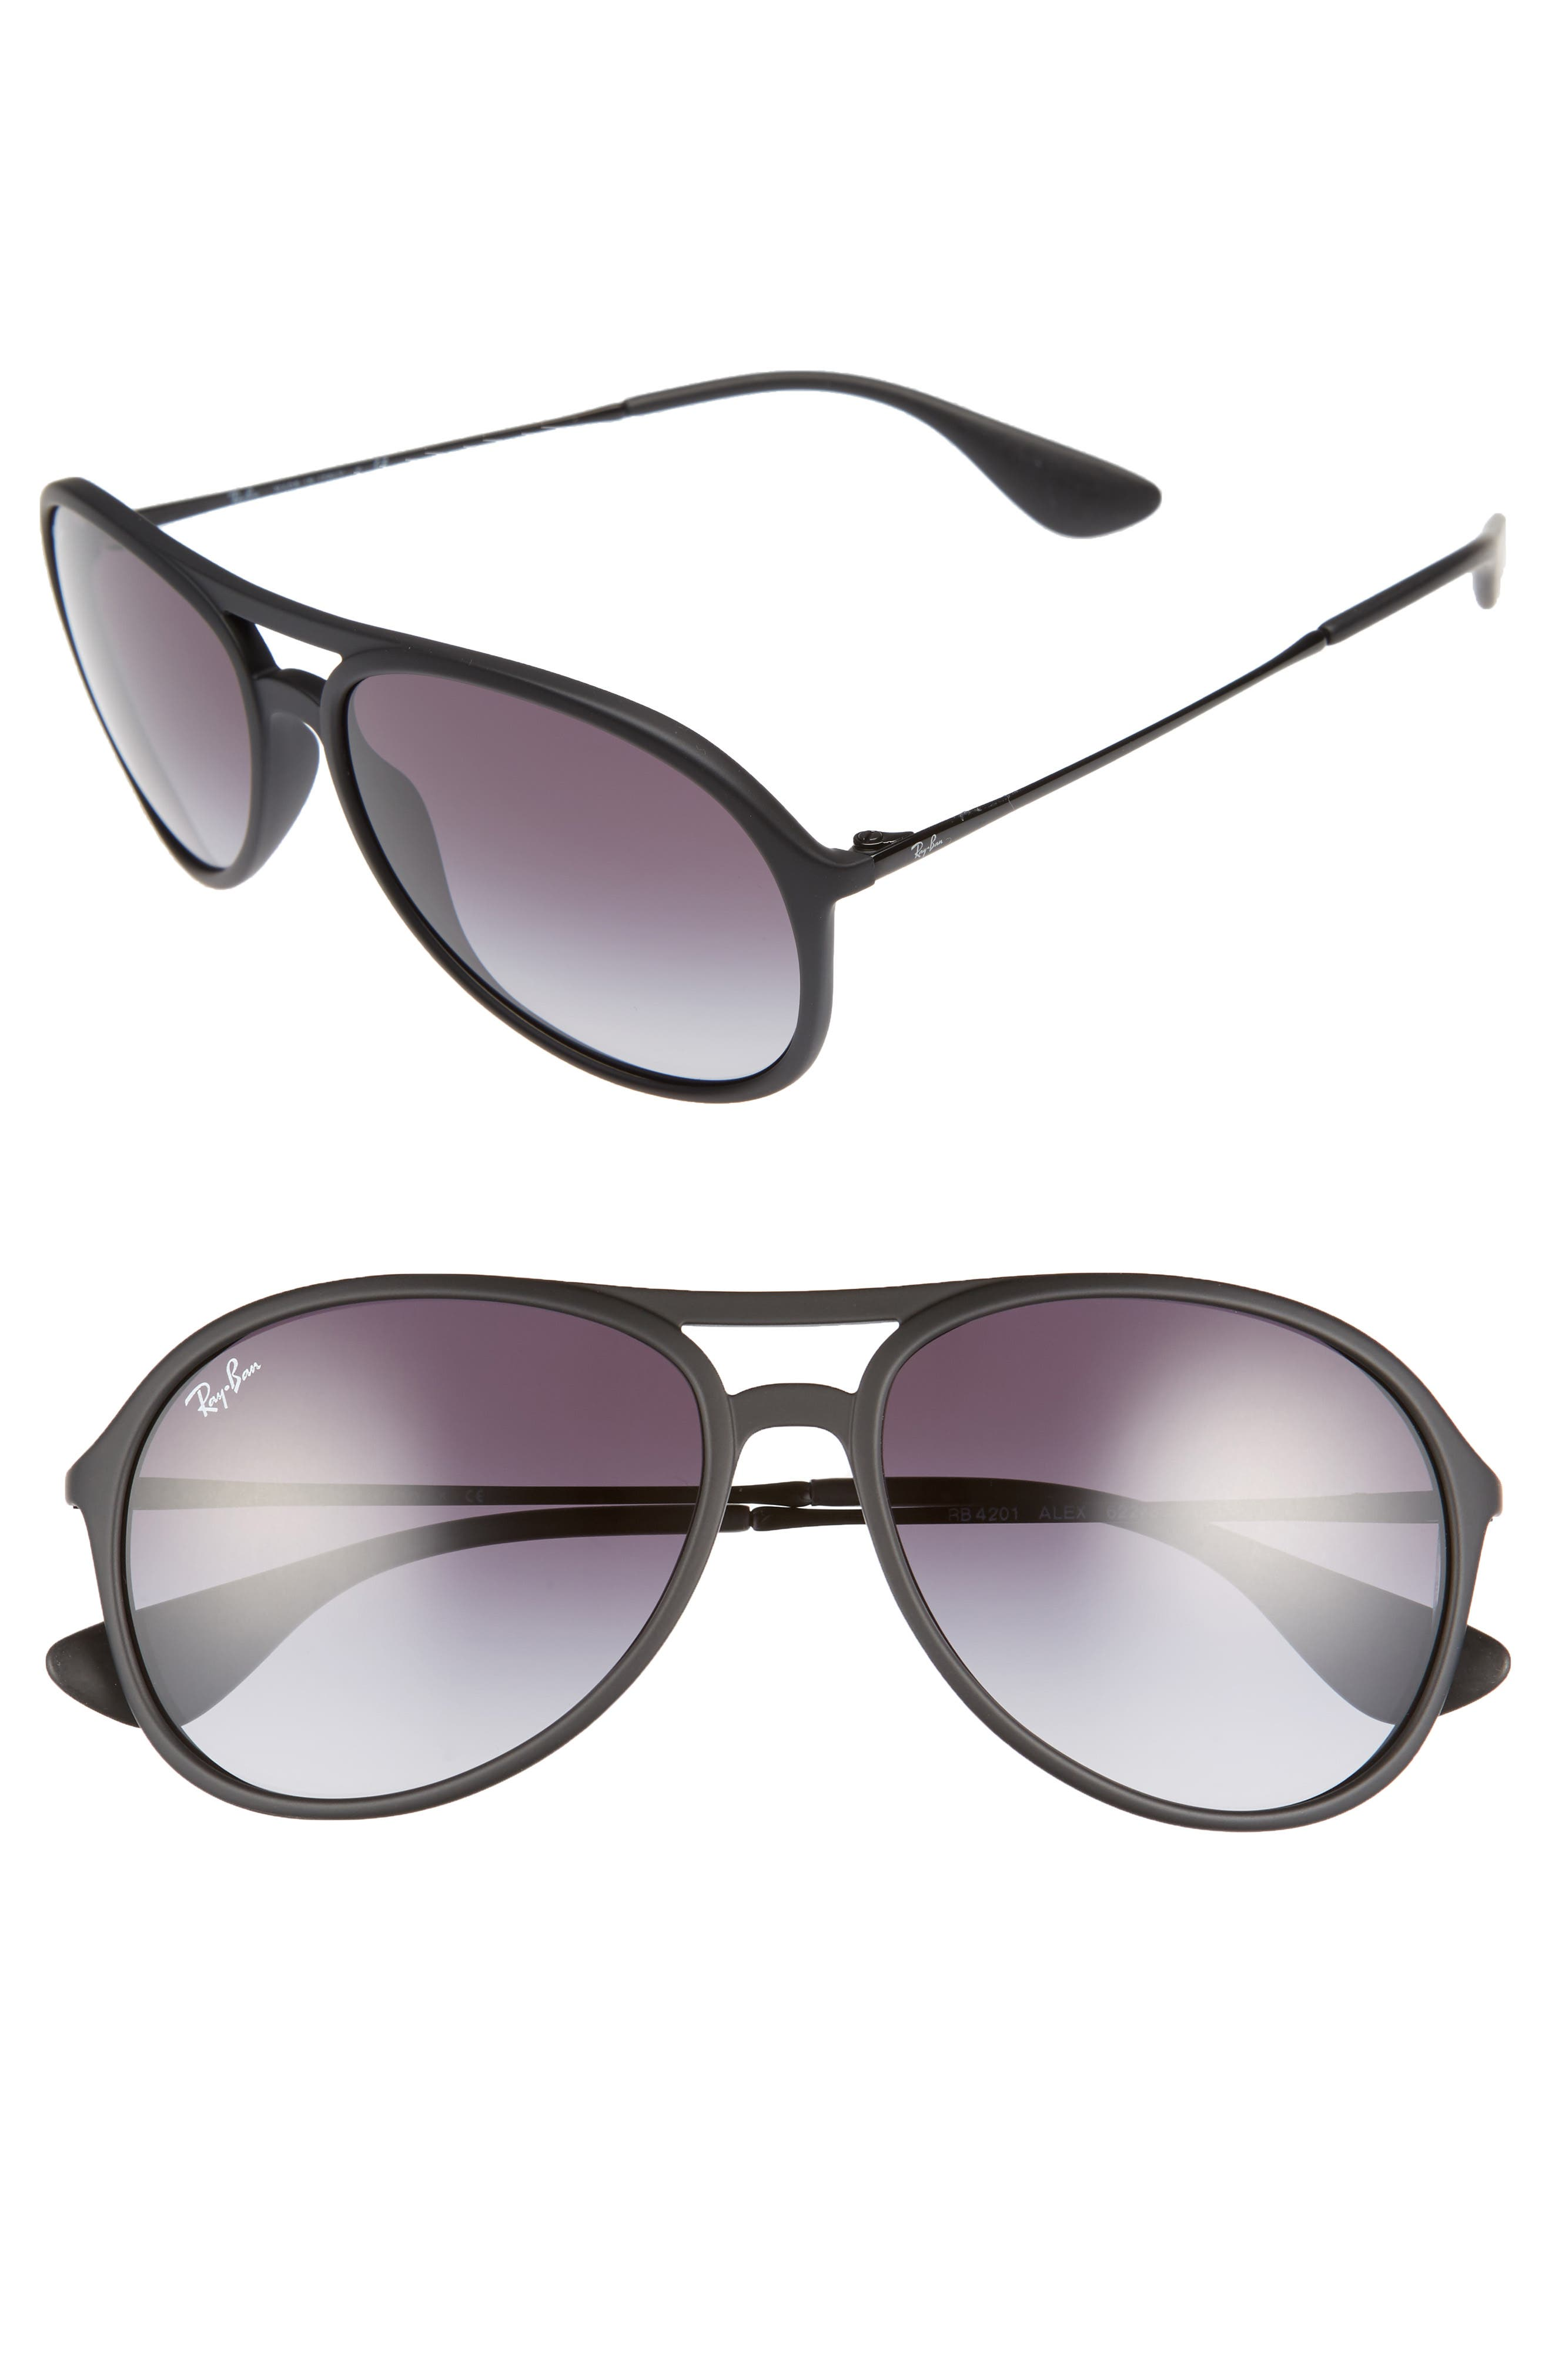 Youngster 59mm Aviator Sunglasses,                         Main,                         color, Matte Black